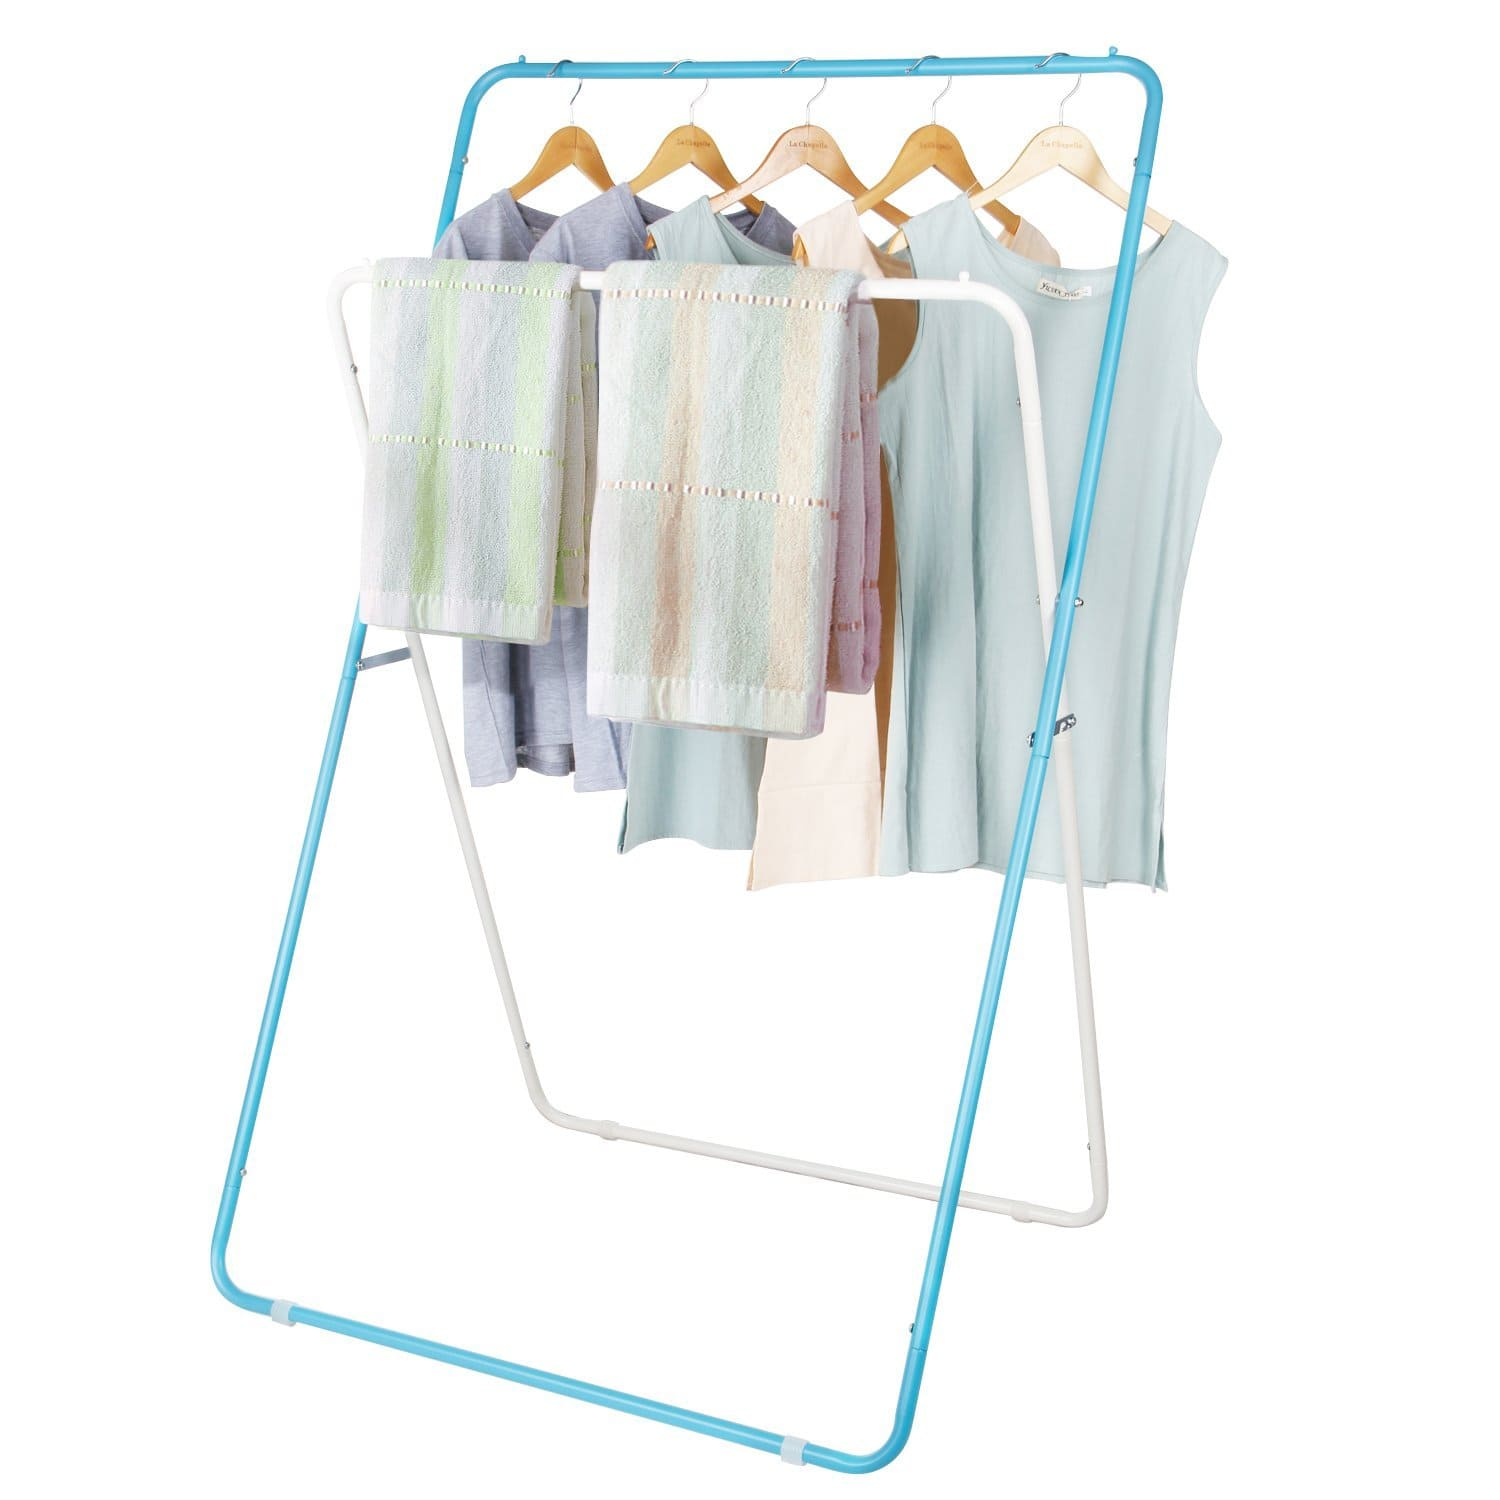 Lifewit Foldable Clothes Drying Rack Heavy Duty Clothes Hanging Rack - $24.74 AC